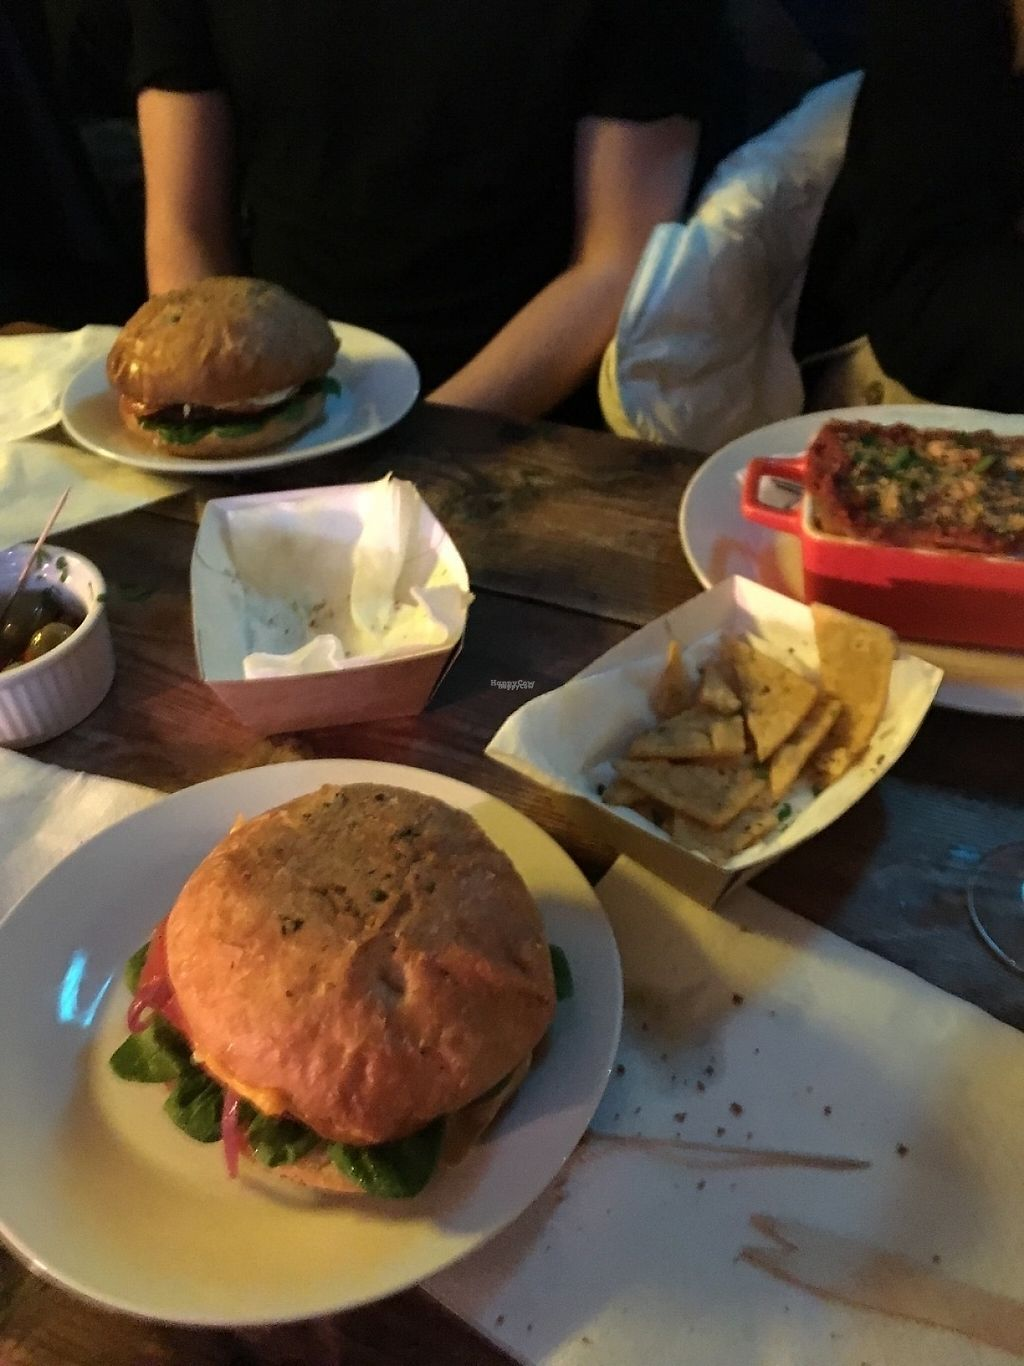 "Photo of Just FaB - Food Bus  by <a href=""/members/profile/Saltyalien"">Saltyalien</a> <br/>Cheeseburger, lasagna and panelle  <br/> November 30, 2016  - <a href='/contact/abuse/image/57709/195958'>Report</a>"